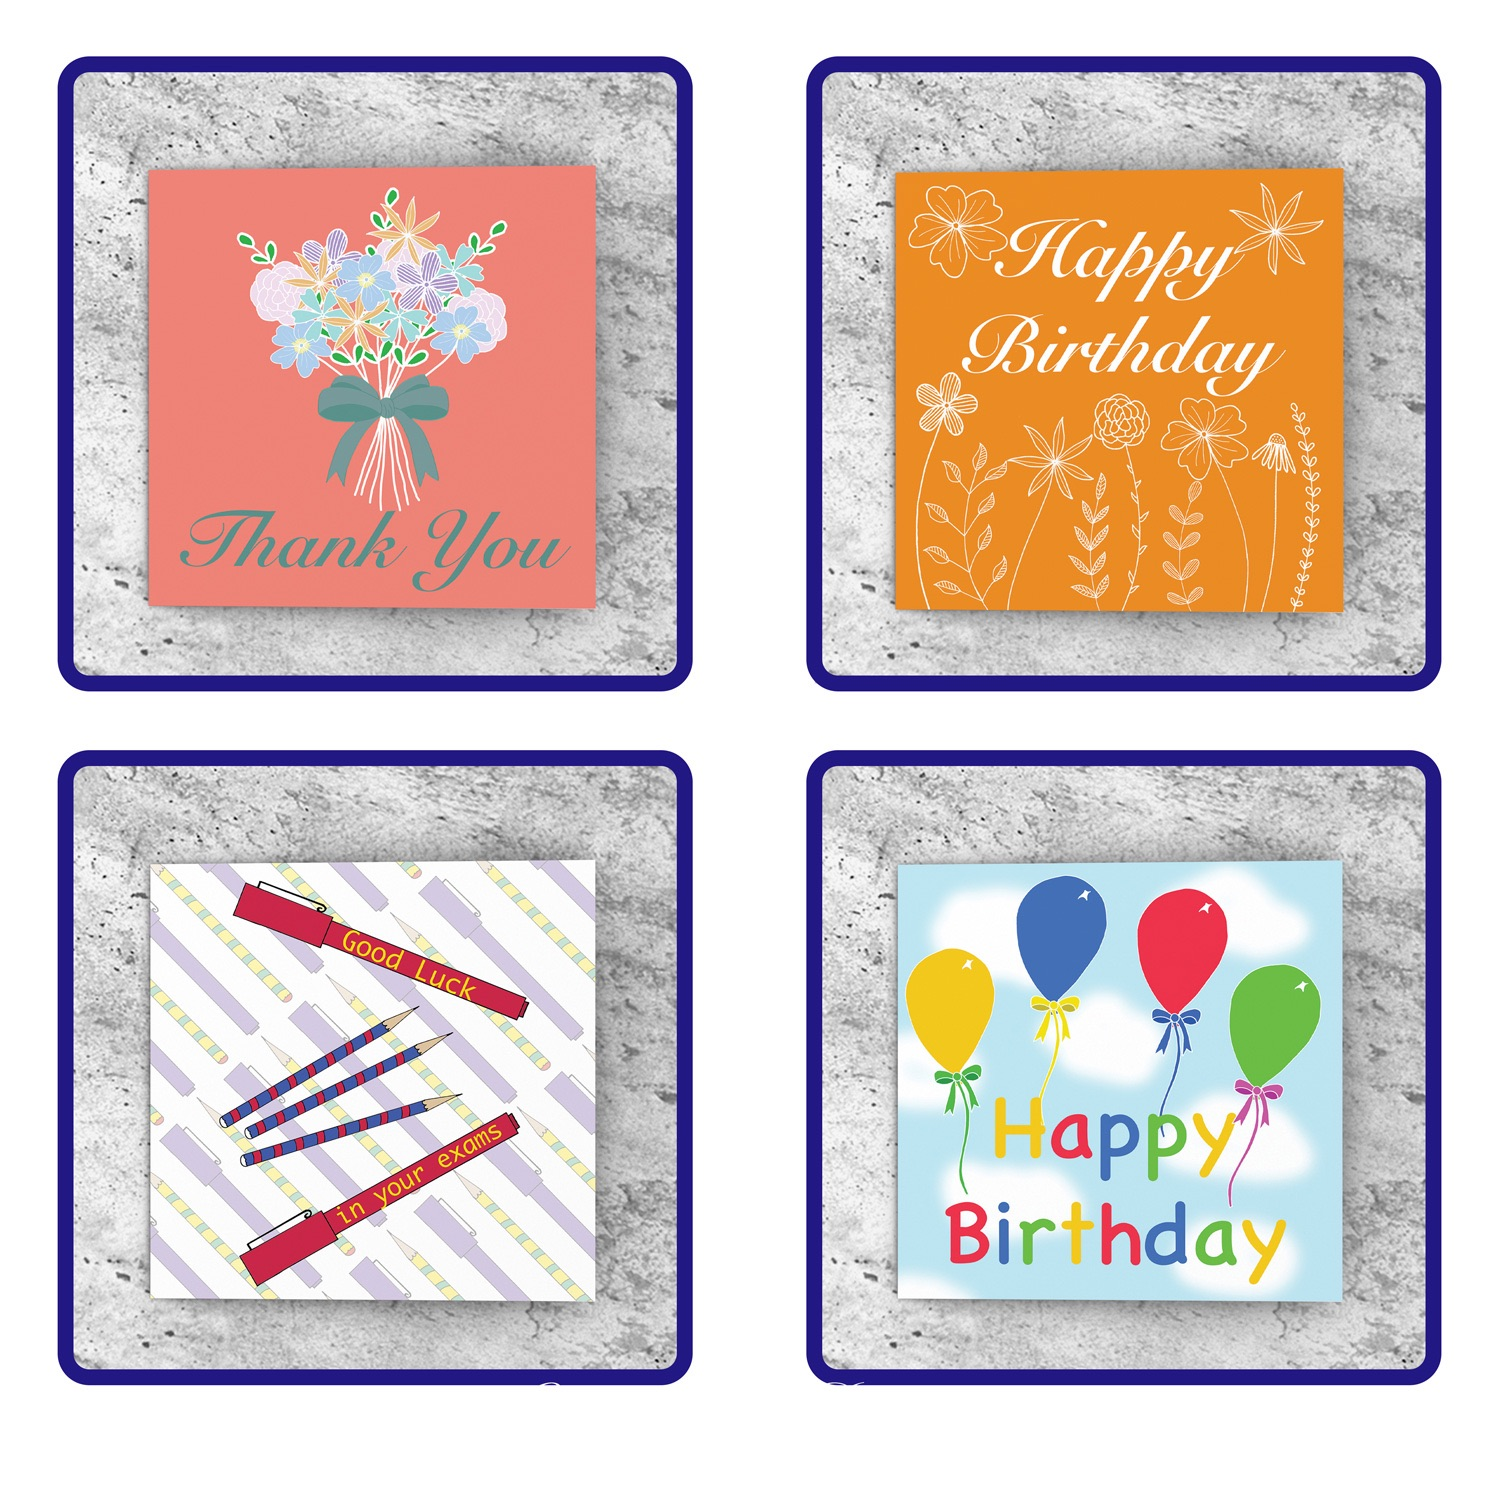 Shop Greetings Cards